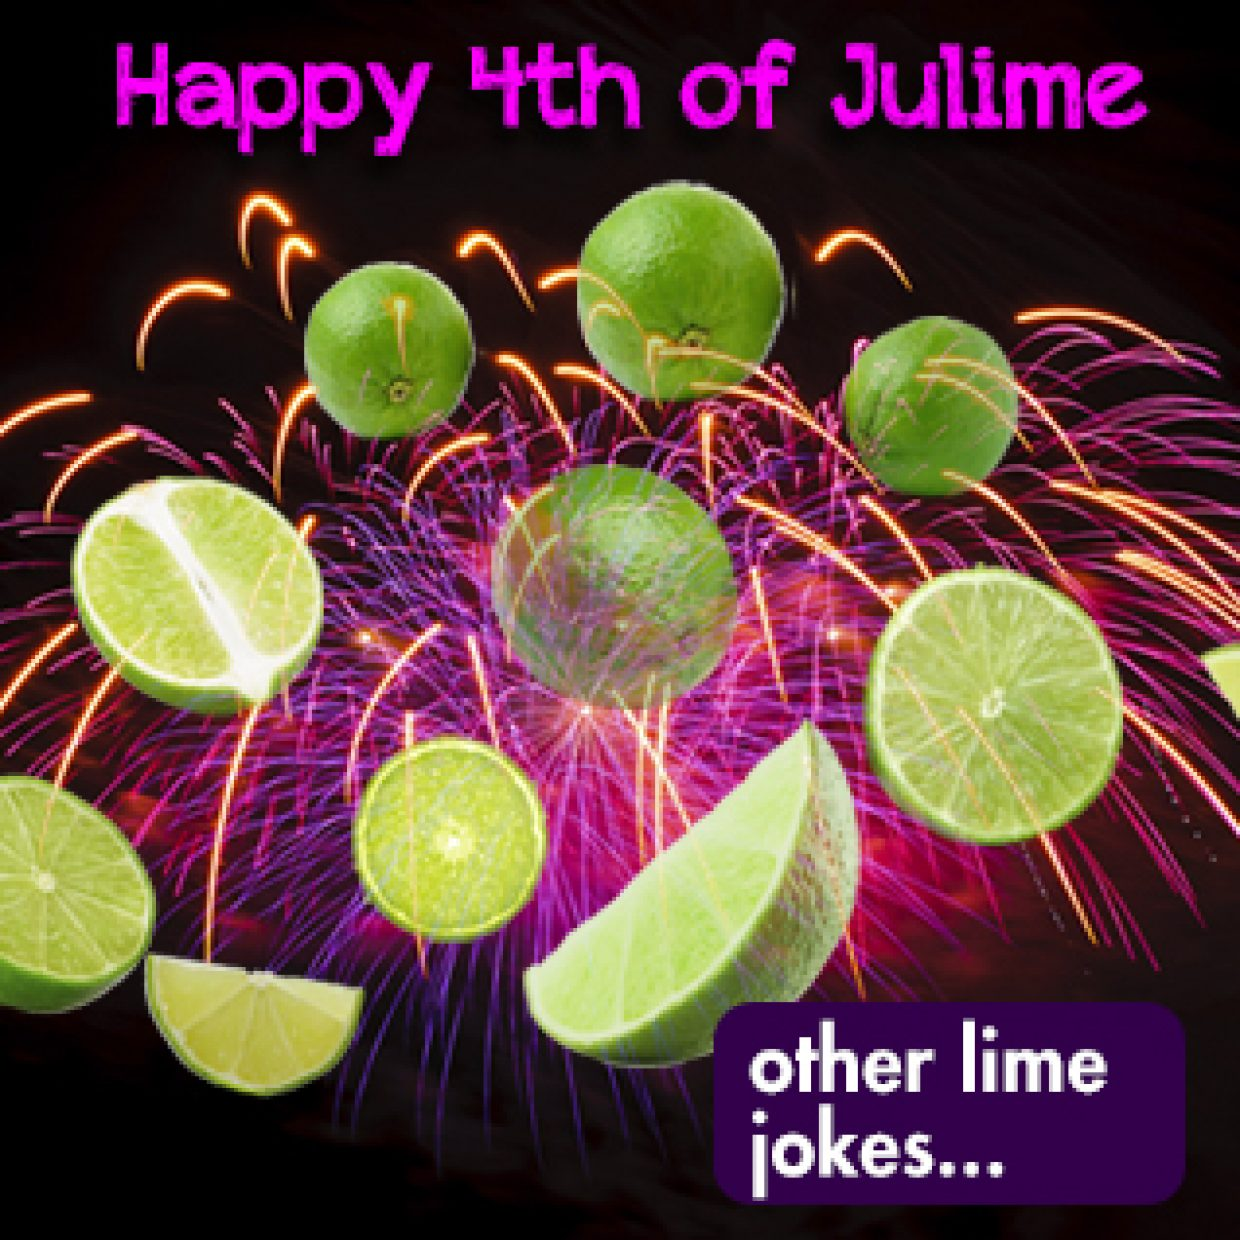 Happy 4th of julime